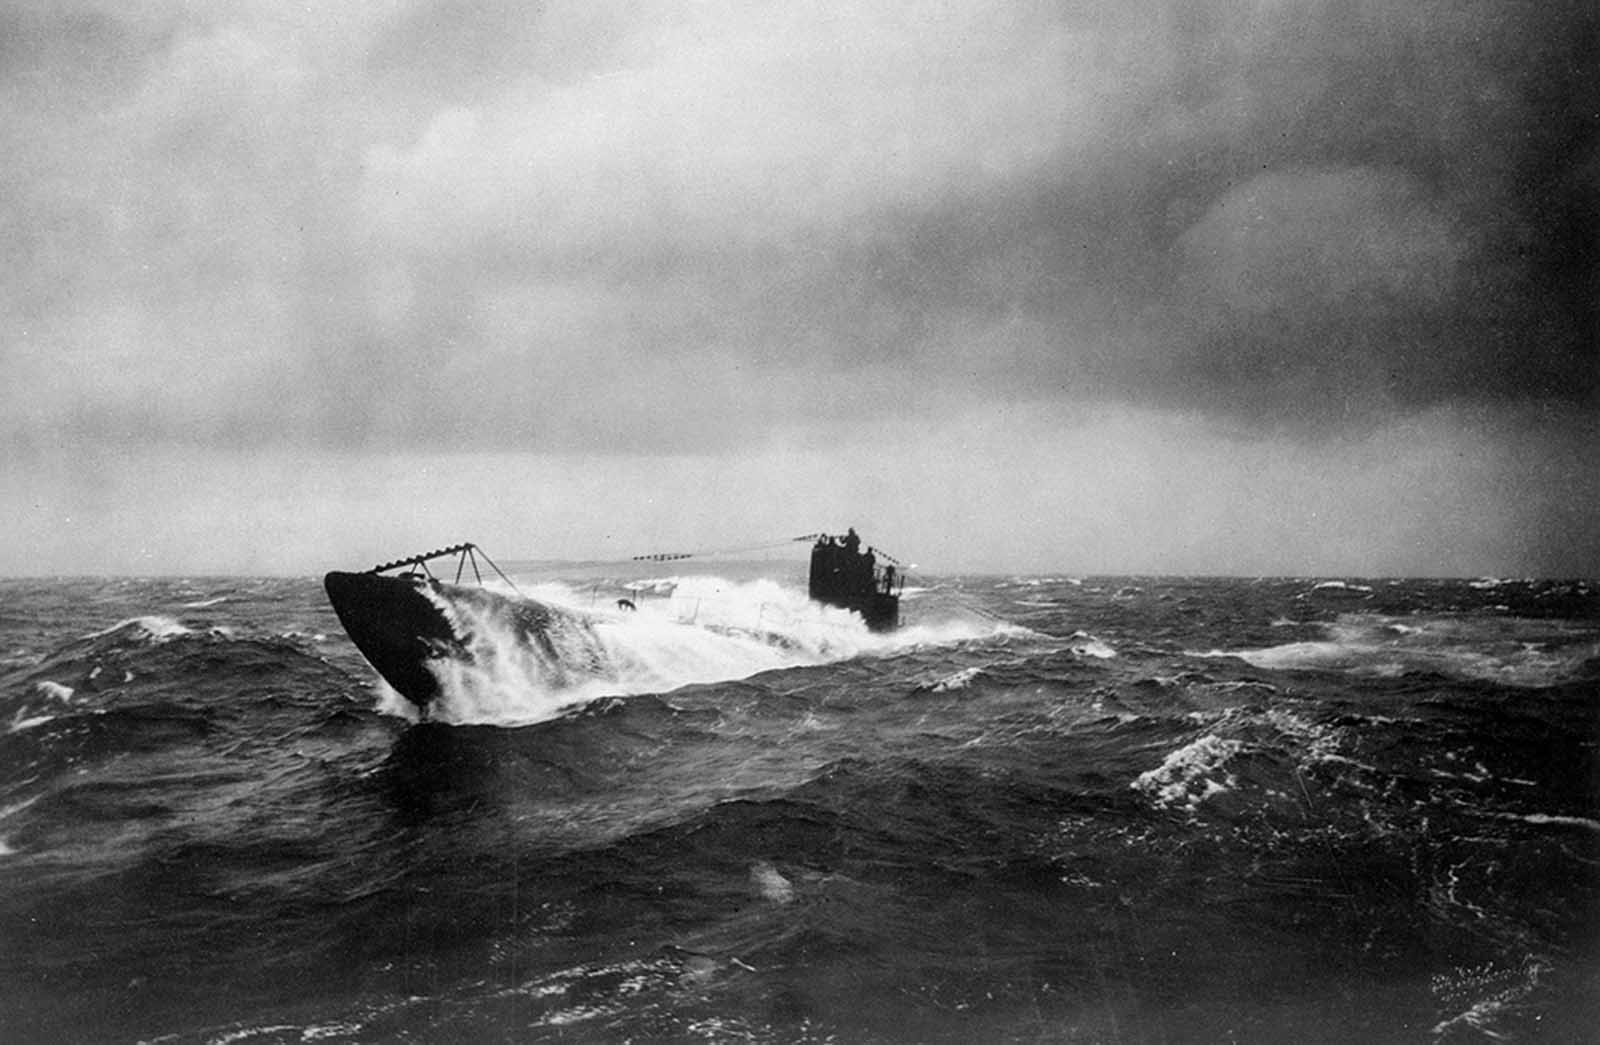 The former German submarine UB 148 at sea, after having been surrendered to the Allies. UB-148, a small coastal submarine, was laid down during the winter of 1917 and 1918 at Bremen, Germany, but never commissioned in the Imperial German Navy. She was completing preparations for commissioning when the armistice of November 11 ended hostilities. On November 26, UB-148 was surrendered to the British at Harwich, England. Later, when the United States Navy expressed an interest in acquiring several former U-boats to use in conjunction with a Victory Bond drive, UB-148 was one of the six boats allocated for that purpose.